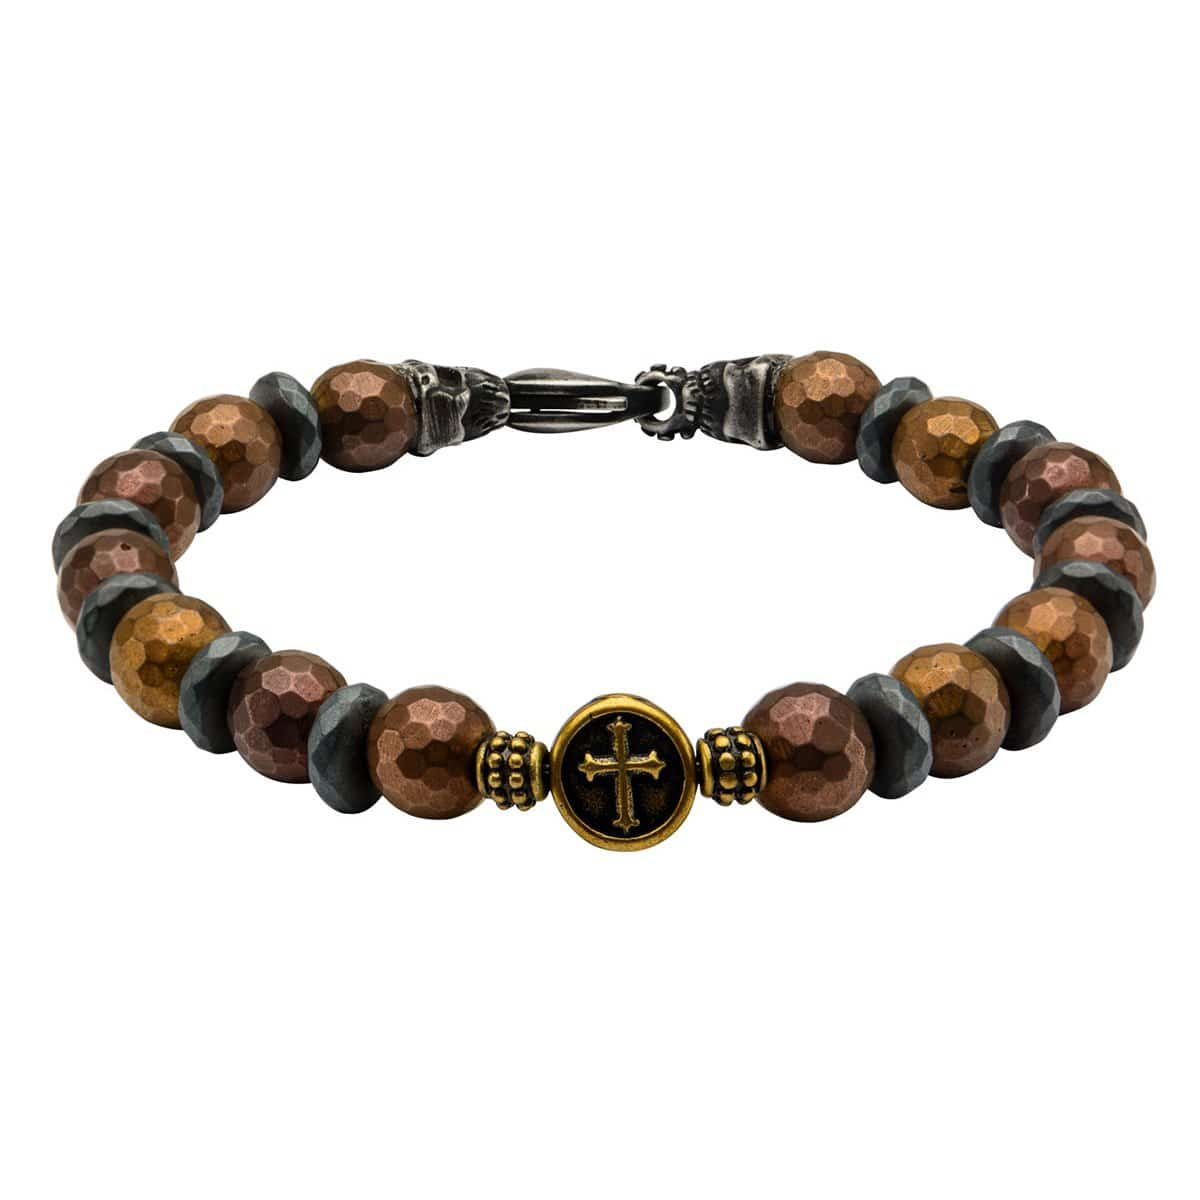 Black & Gold Stainless Steel with Brown Hematite Roberto Arichi Cross & Skull Bead Bracelet